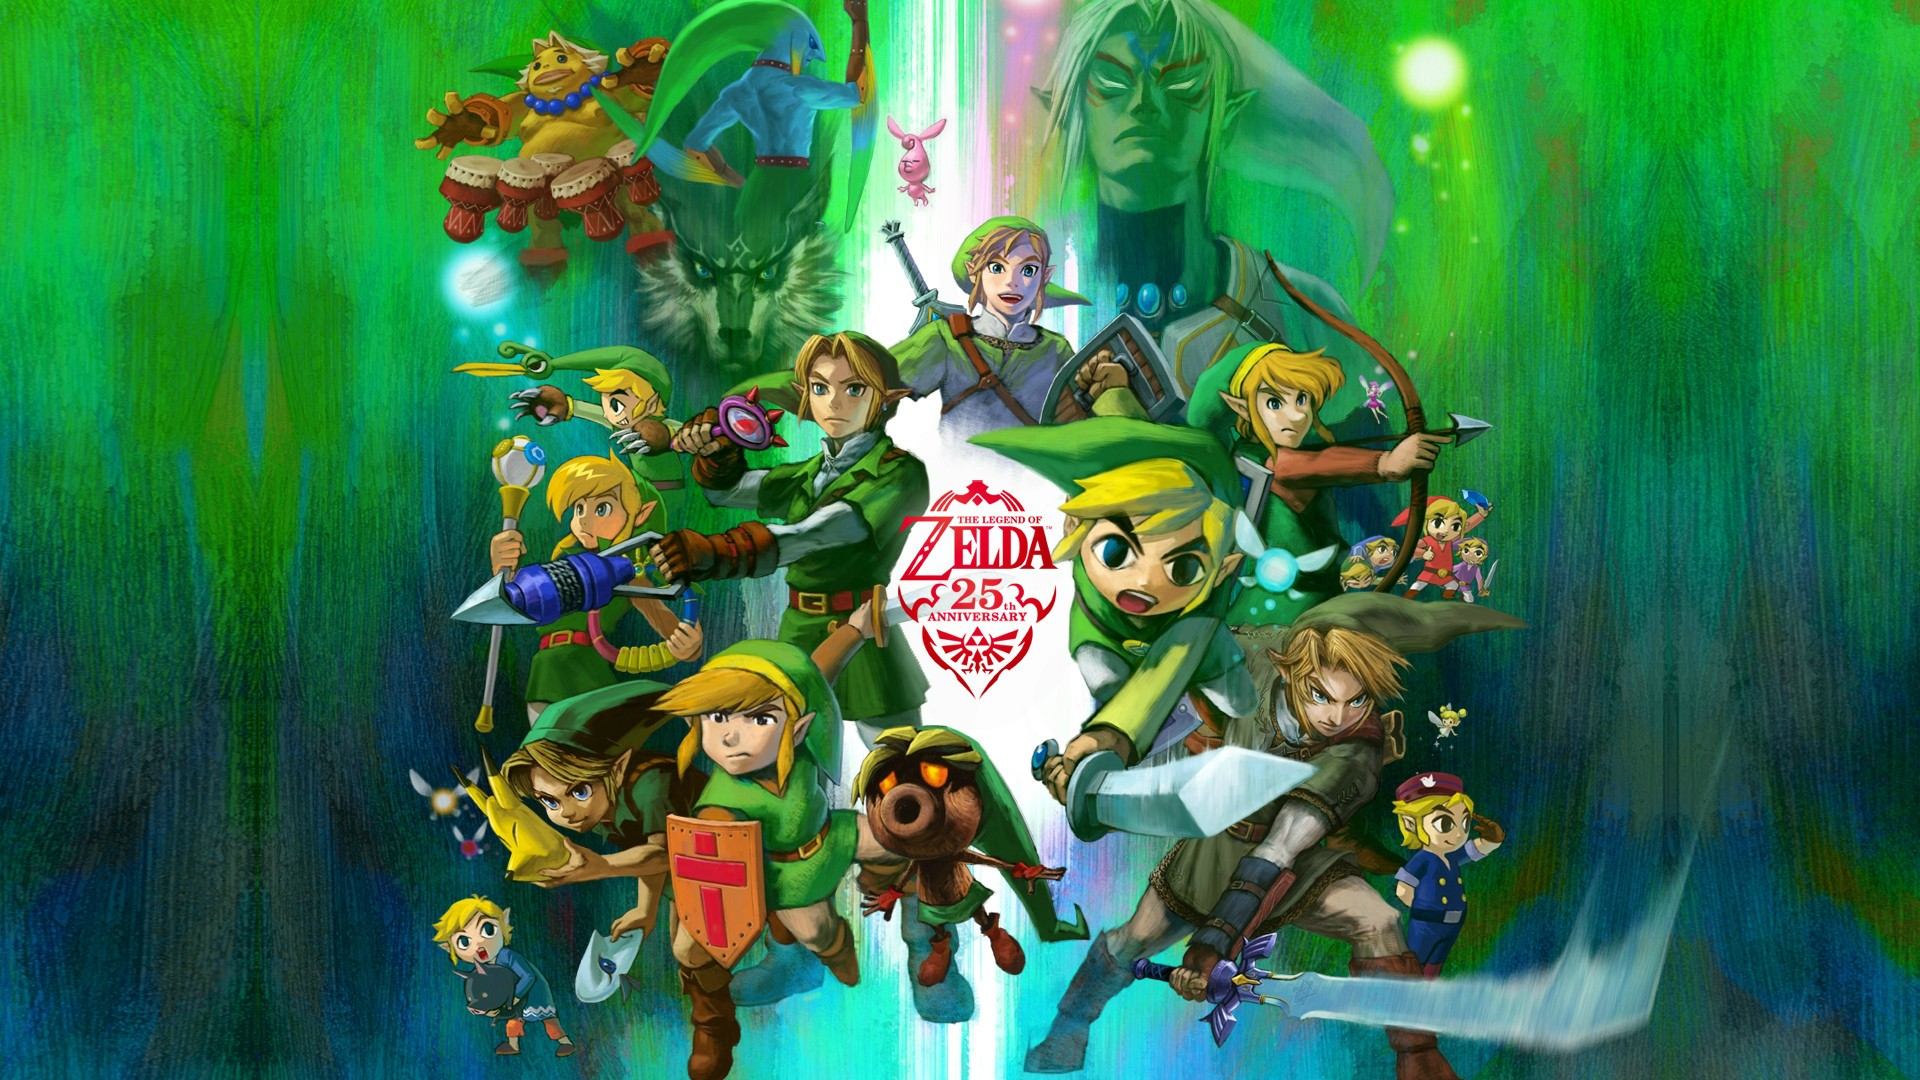 Legend Of Zelda Archives   Page 2 of 2   1920x1080 Wallpapers 1920x1080